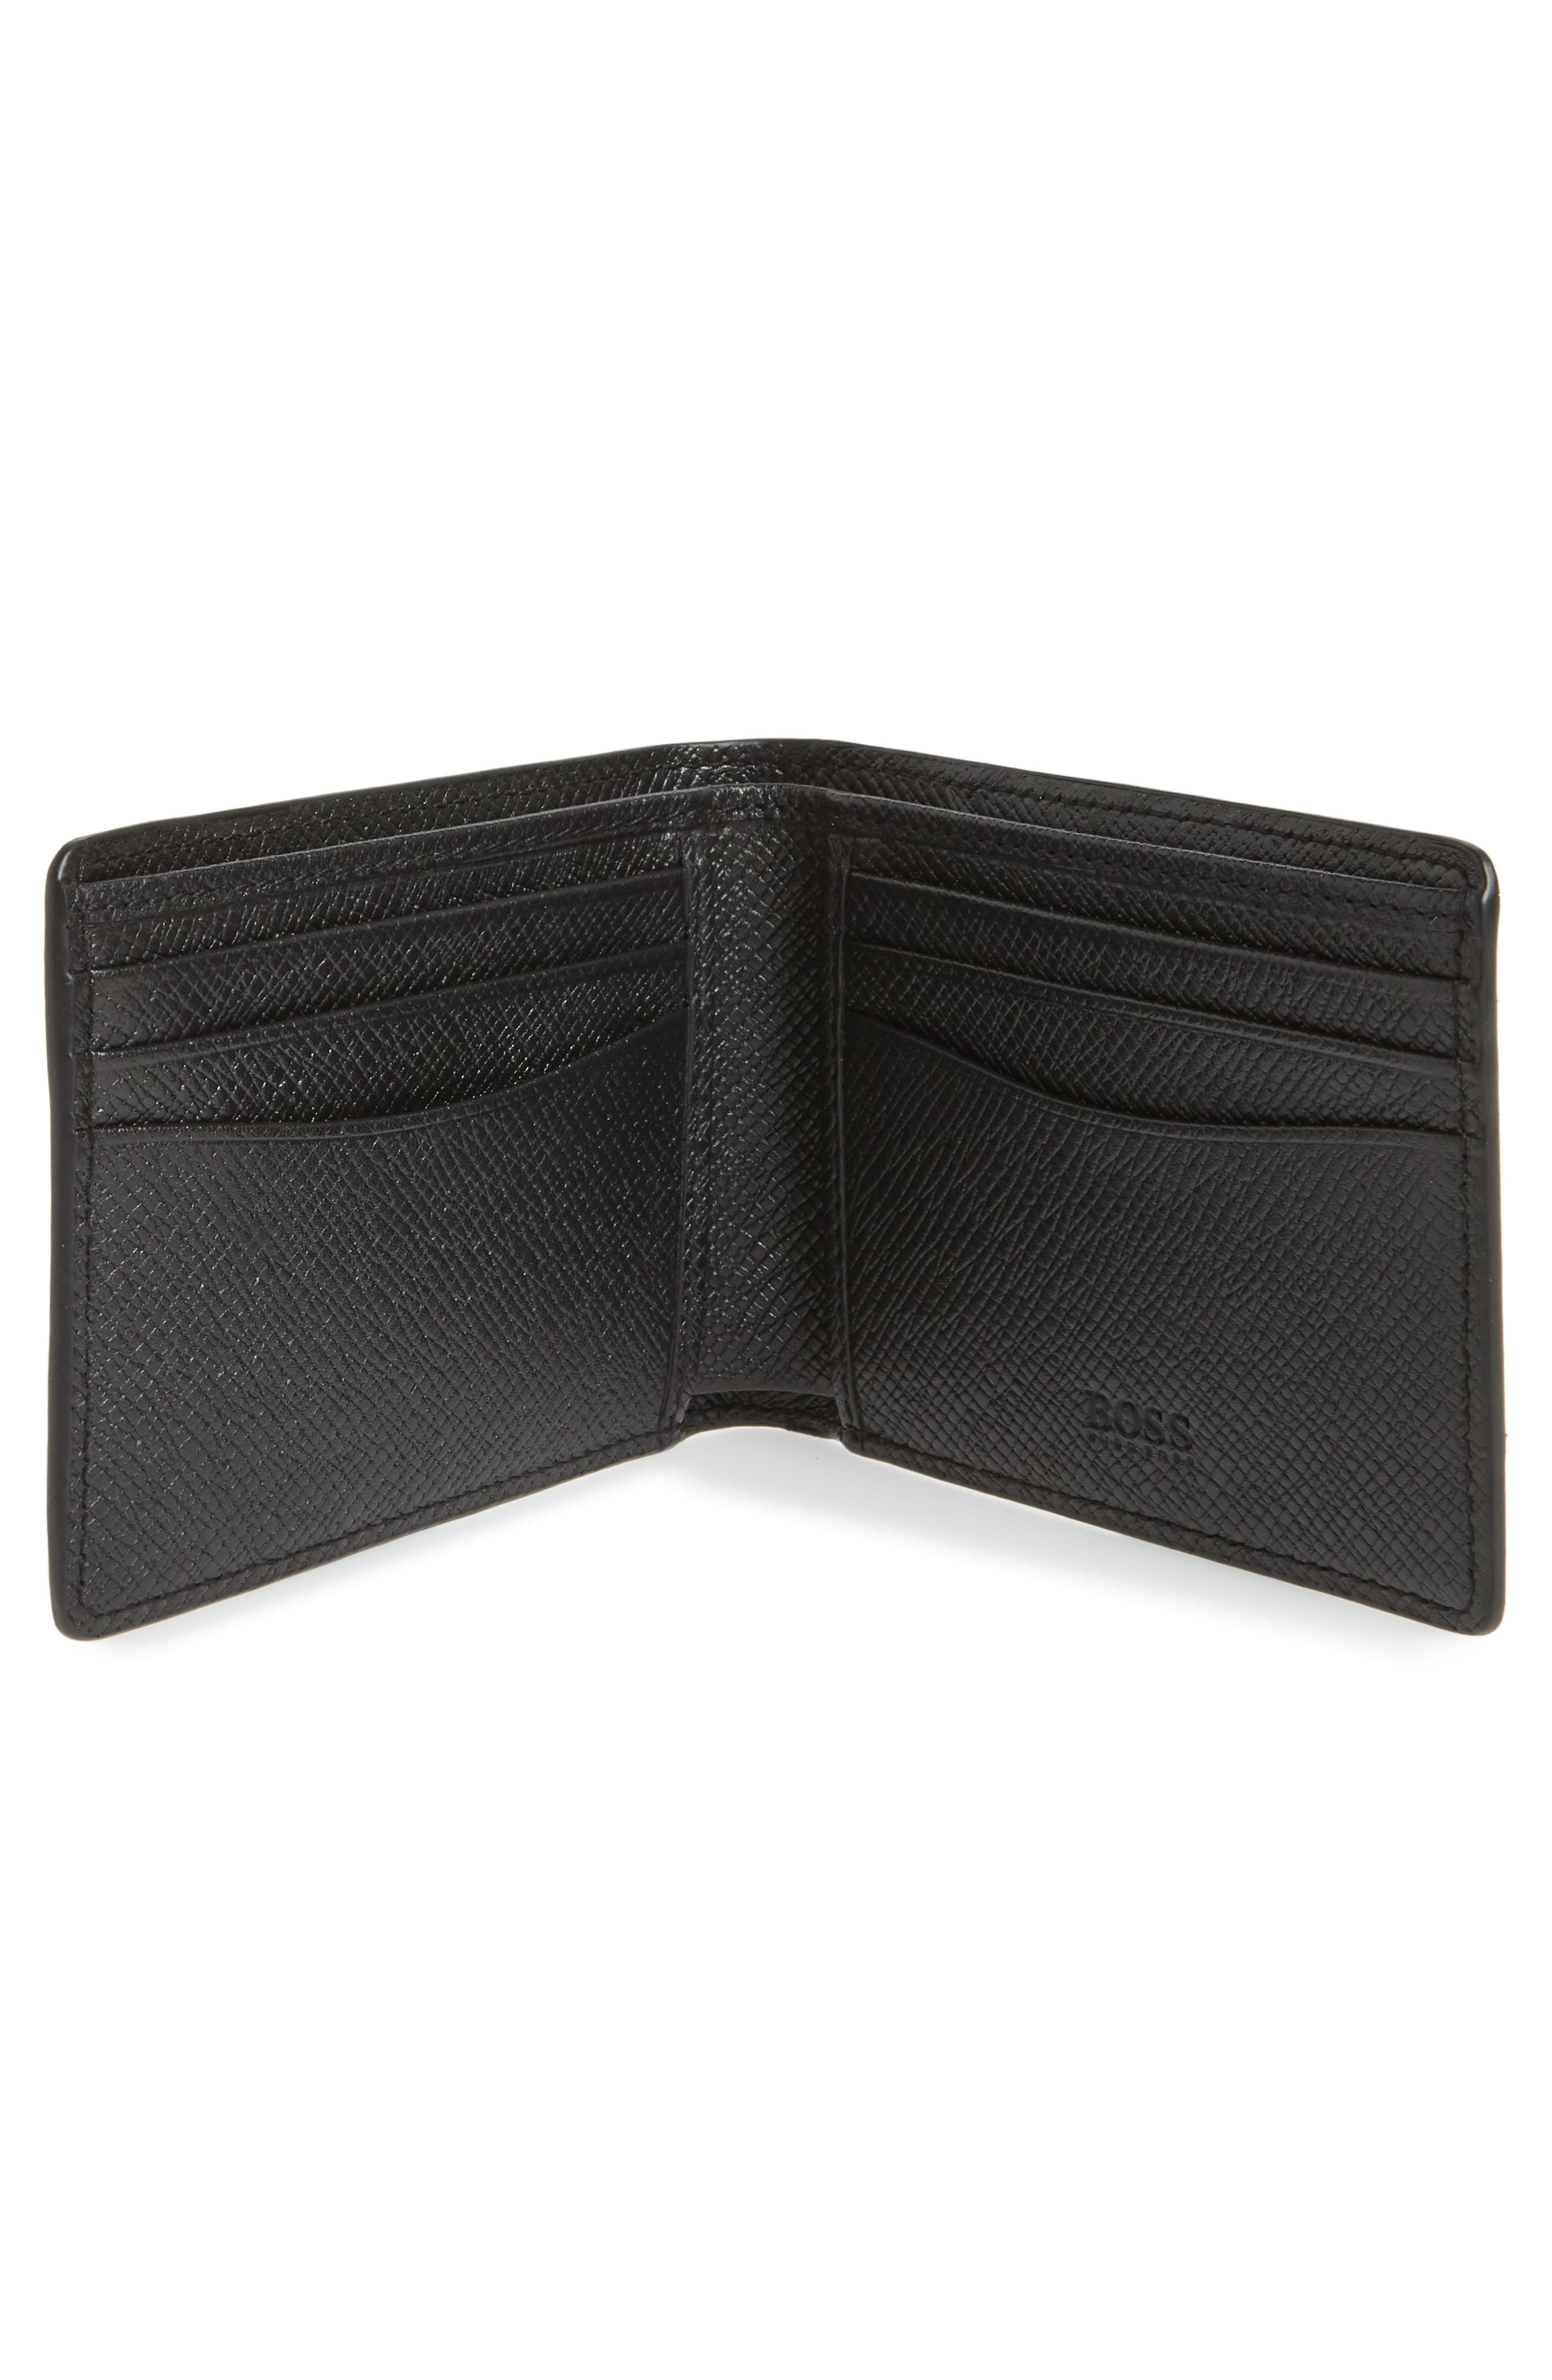 Signature Leather Wallet,                             Alternate thumbnail 2, color,                             Black Watch